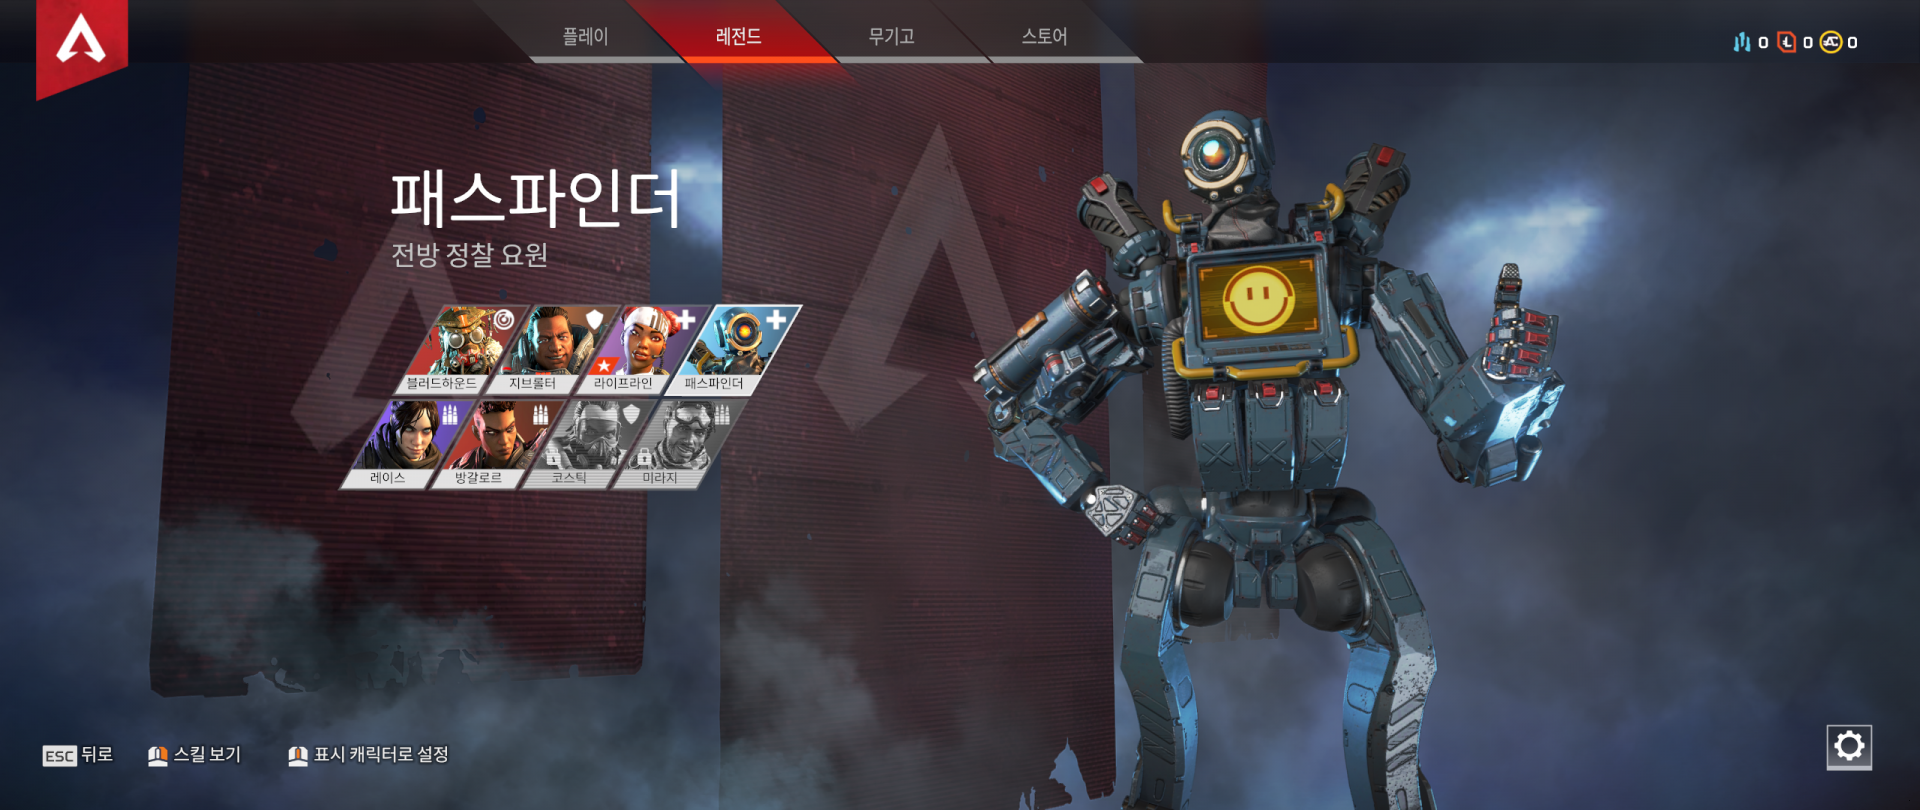 Apex Screenshot 2019.02.05 - 06.26.28.51.png